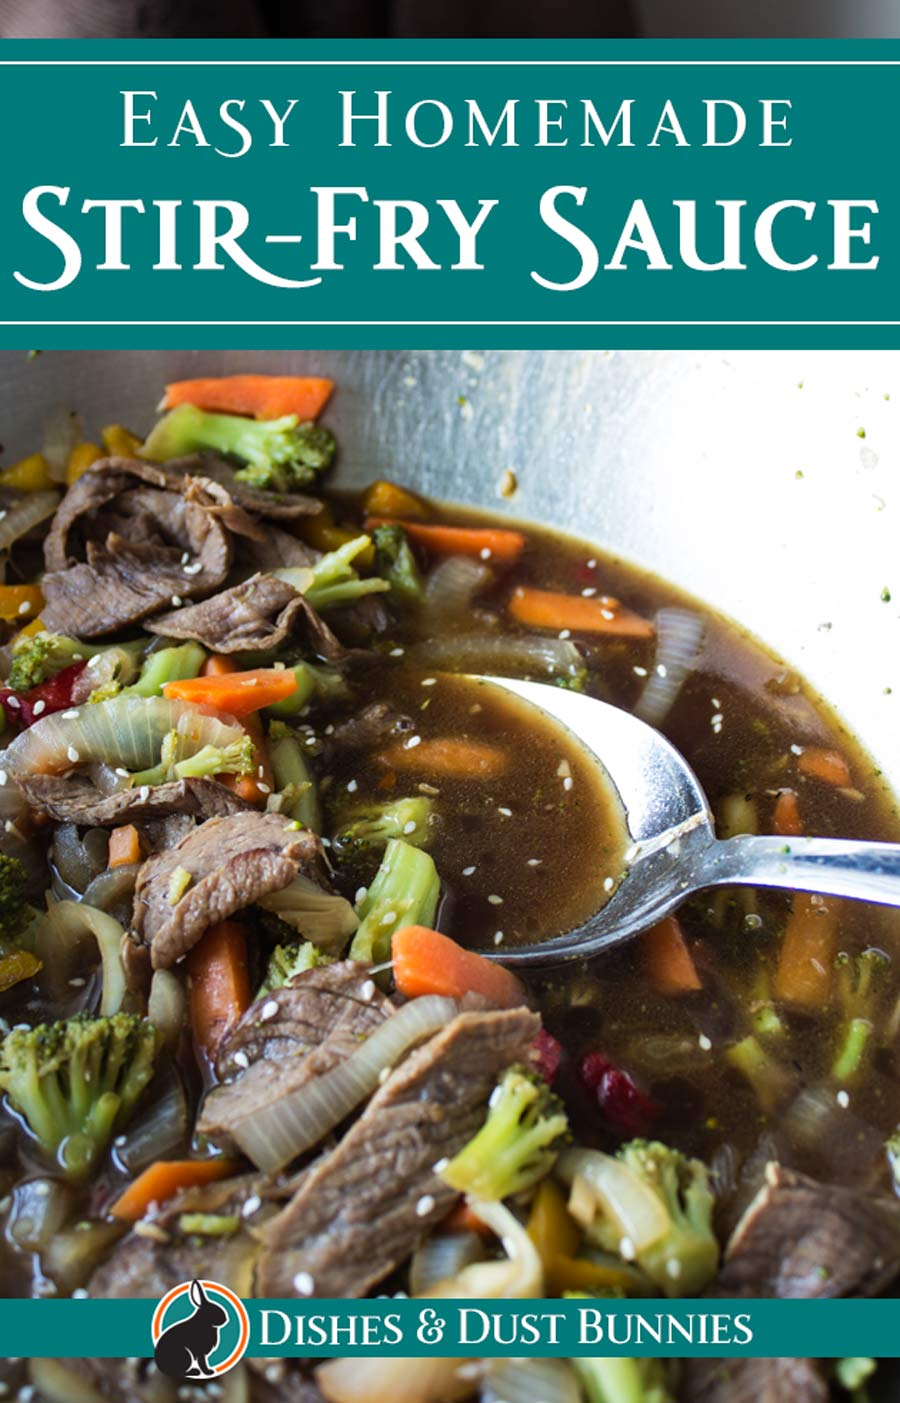 Easy Homemade Stir Fry Sauce via @mvdustbunnies